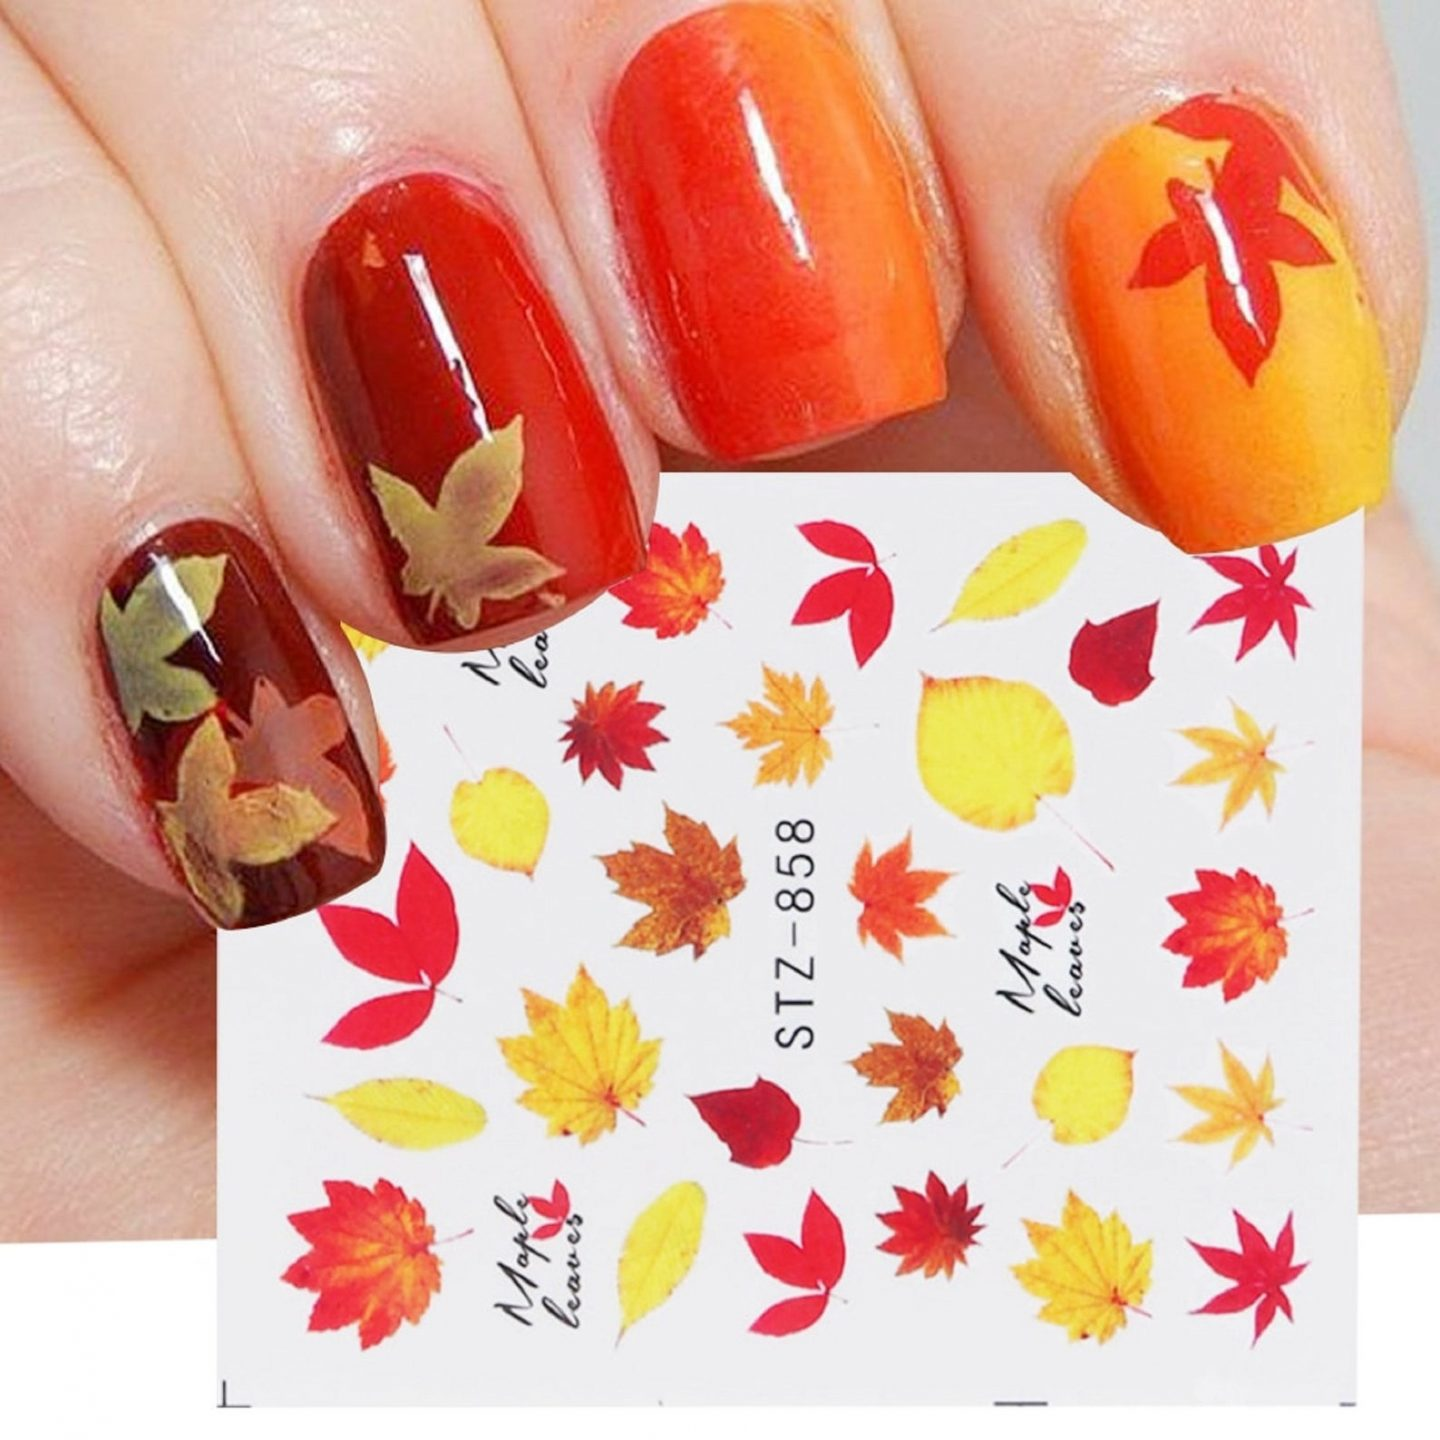 Ombre orange fall nails with leaf nail art